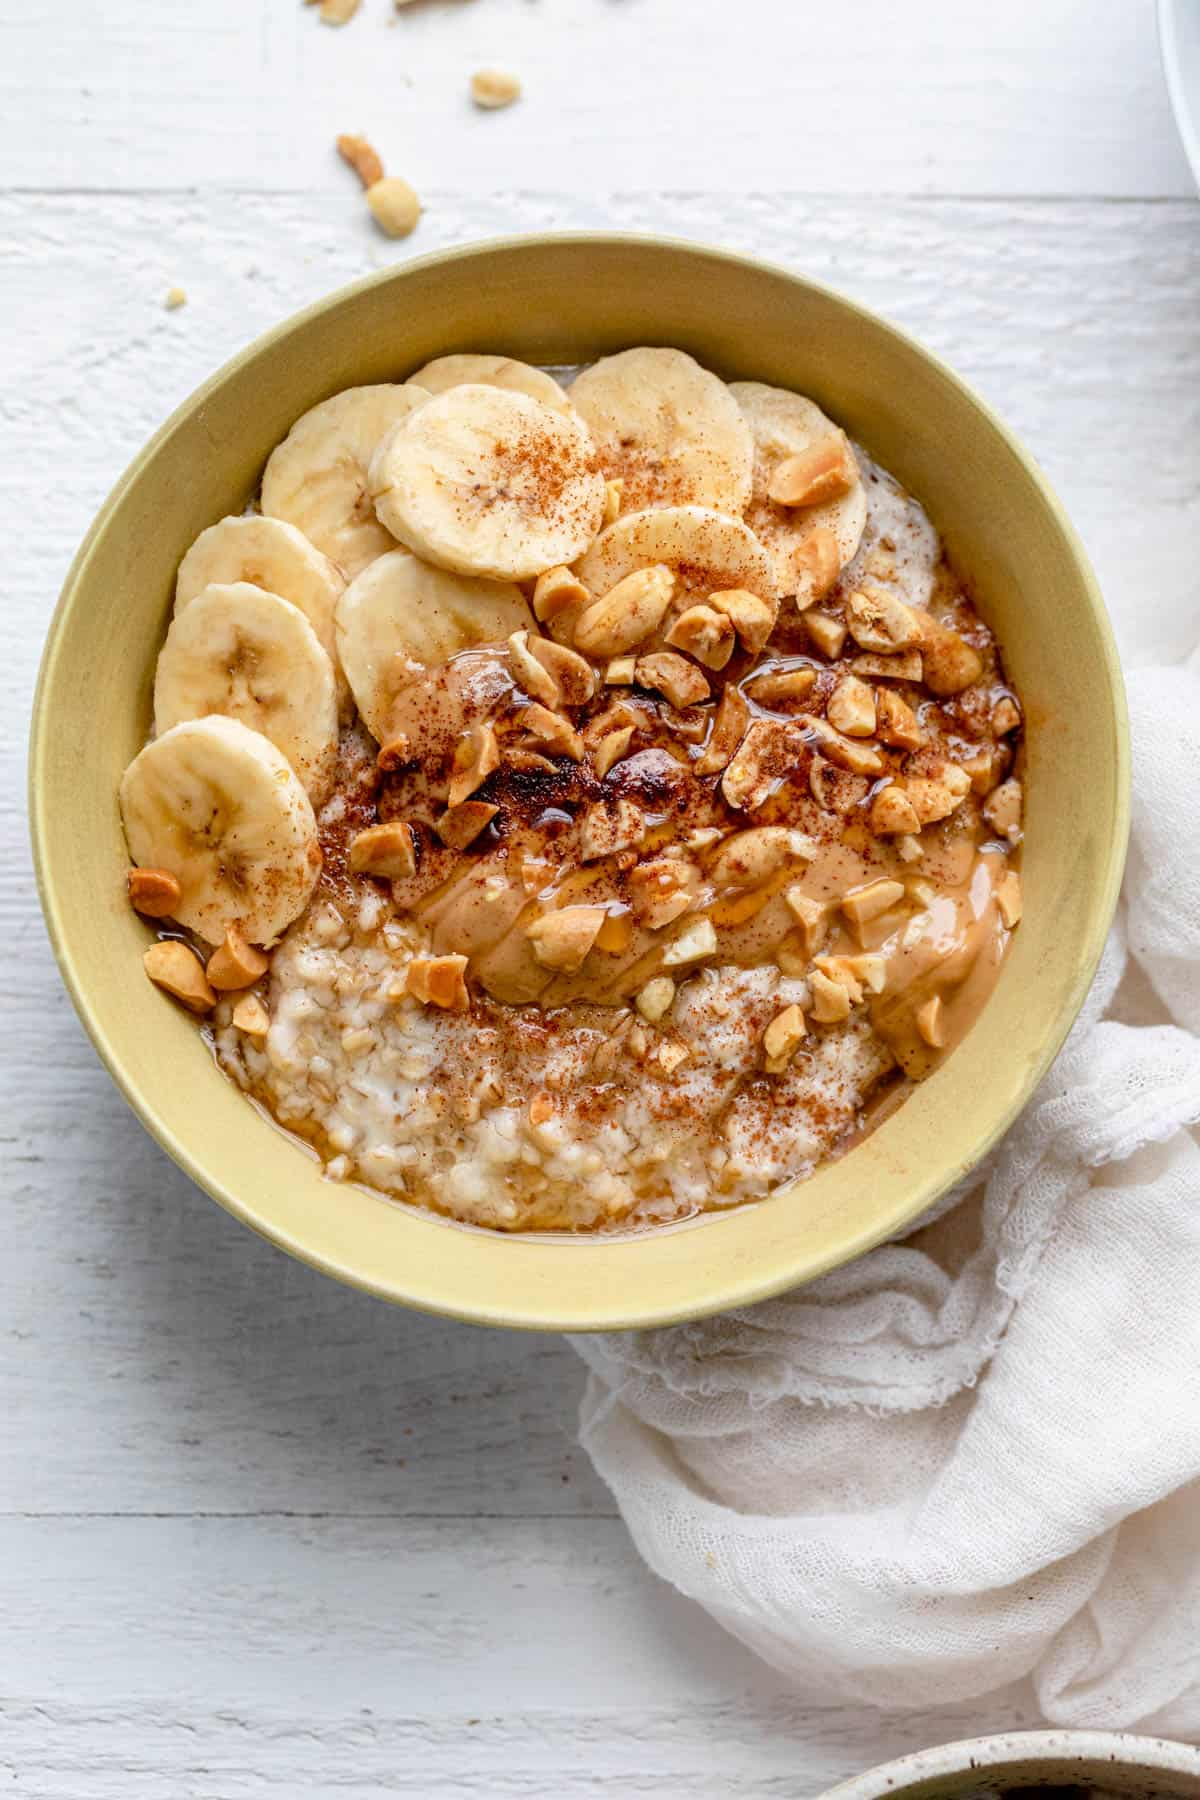 Bananas and peanut butter over oatmeal in yellow bowl